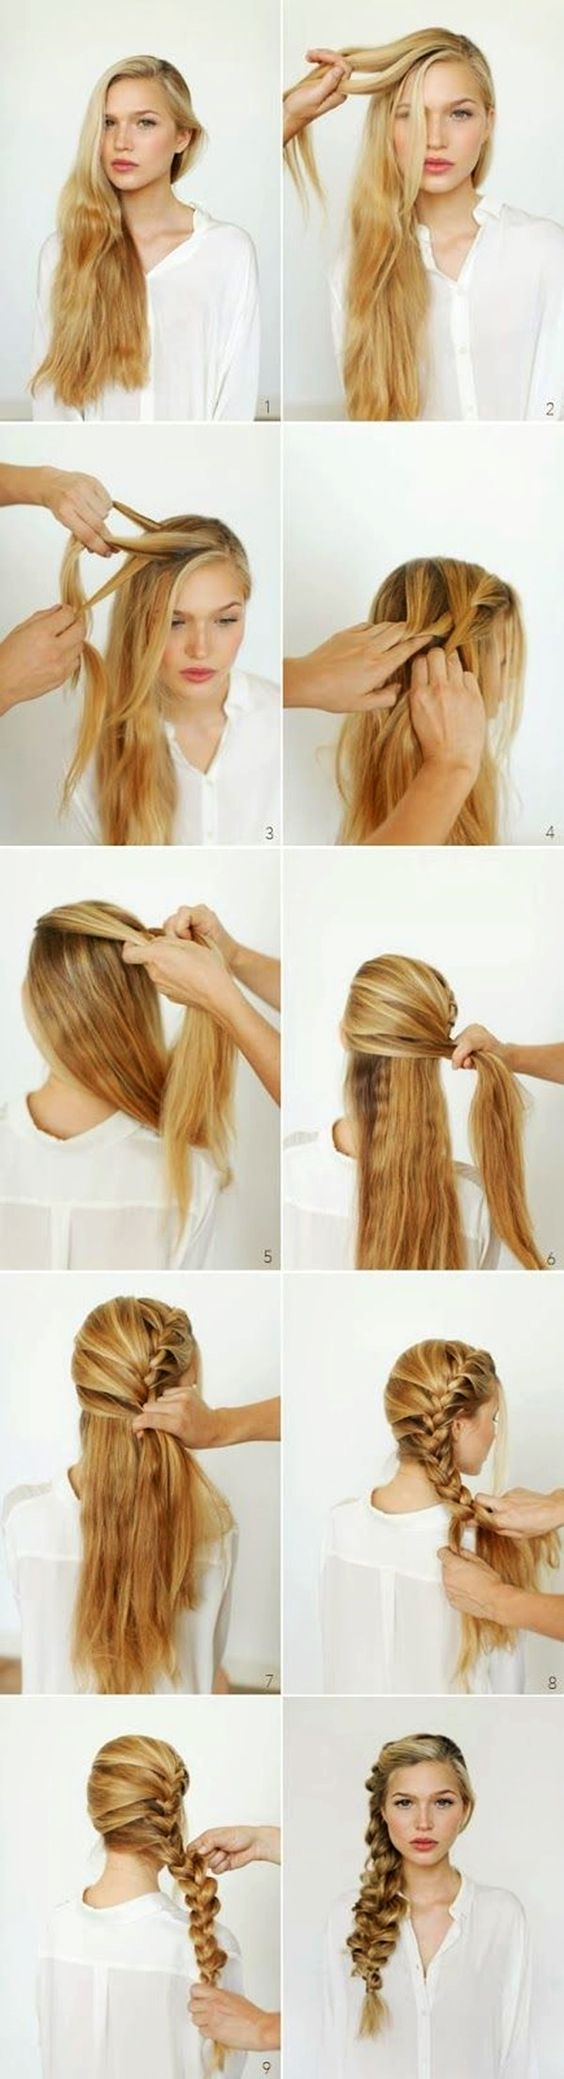 15 Easy Step By Step Hairstyles for Long Hair  Frisur Ideen